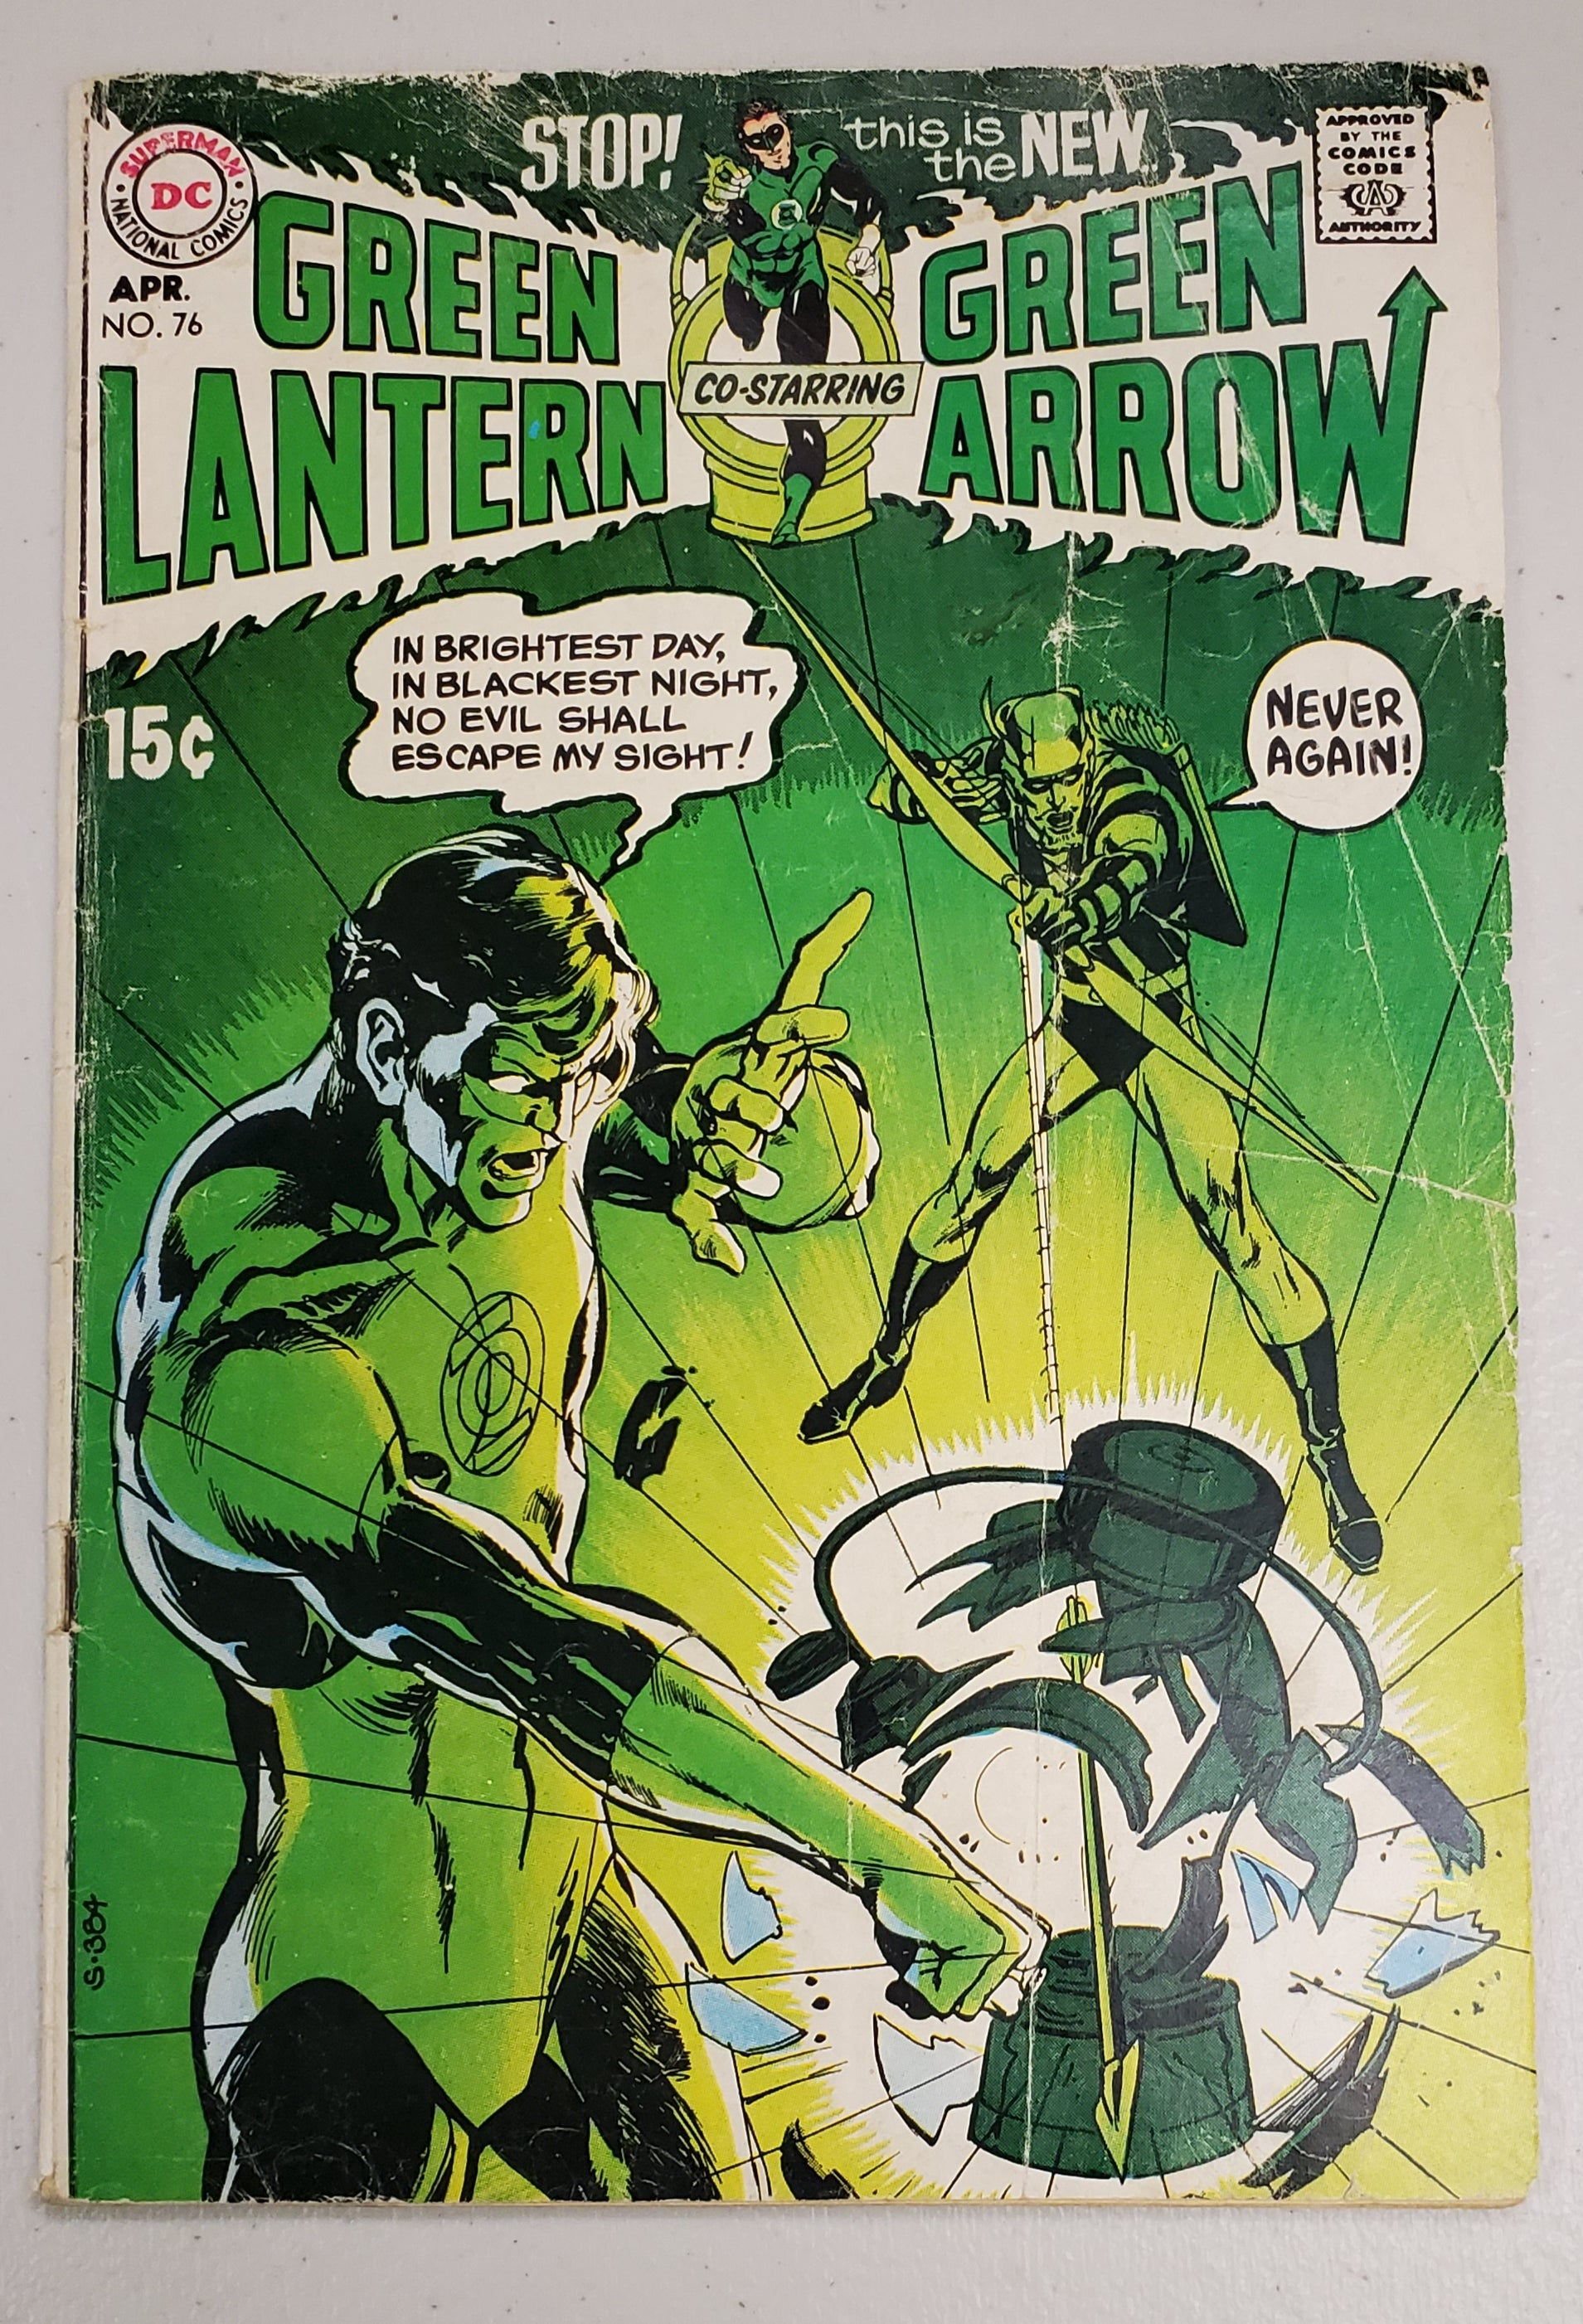 GREEN LANTERN #76 (GREEN LANTERN/GREEN ARROW STORIES BEGIN) 1970